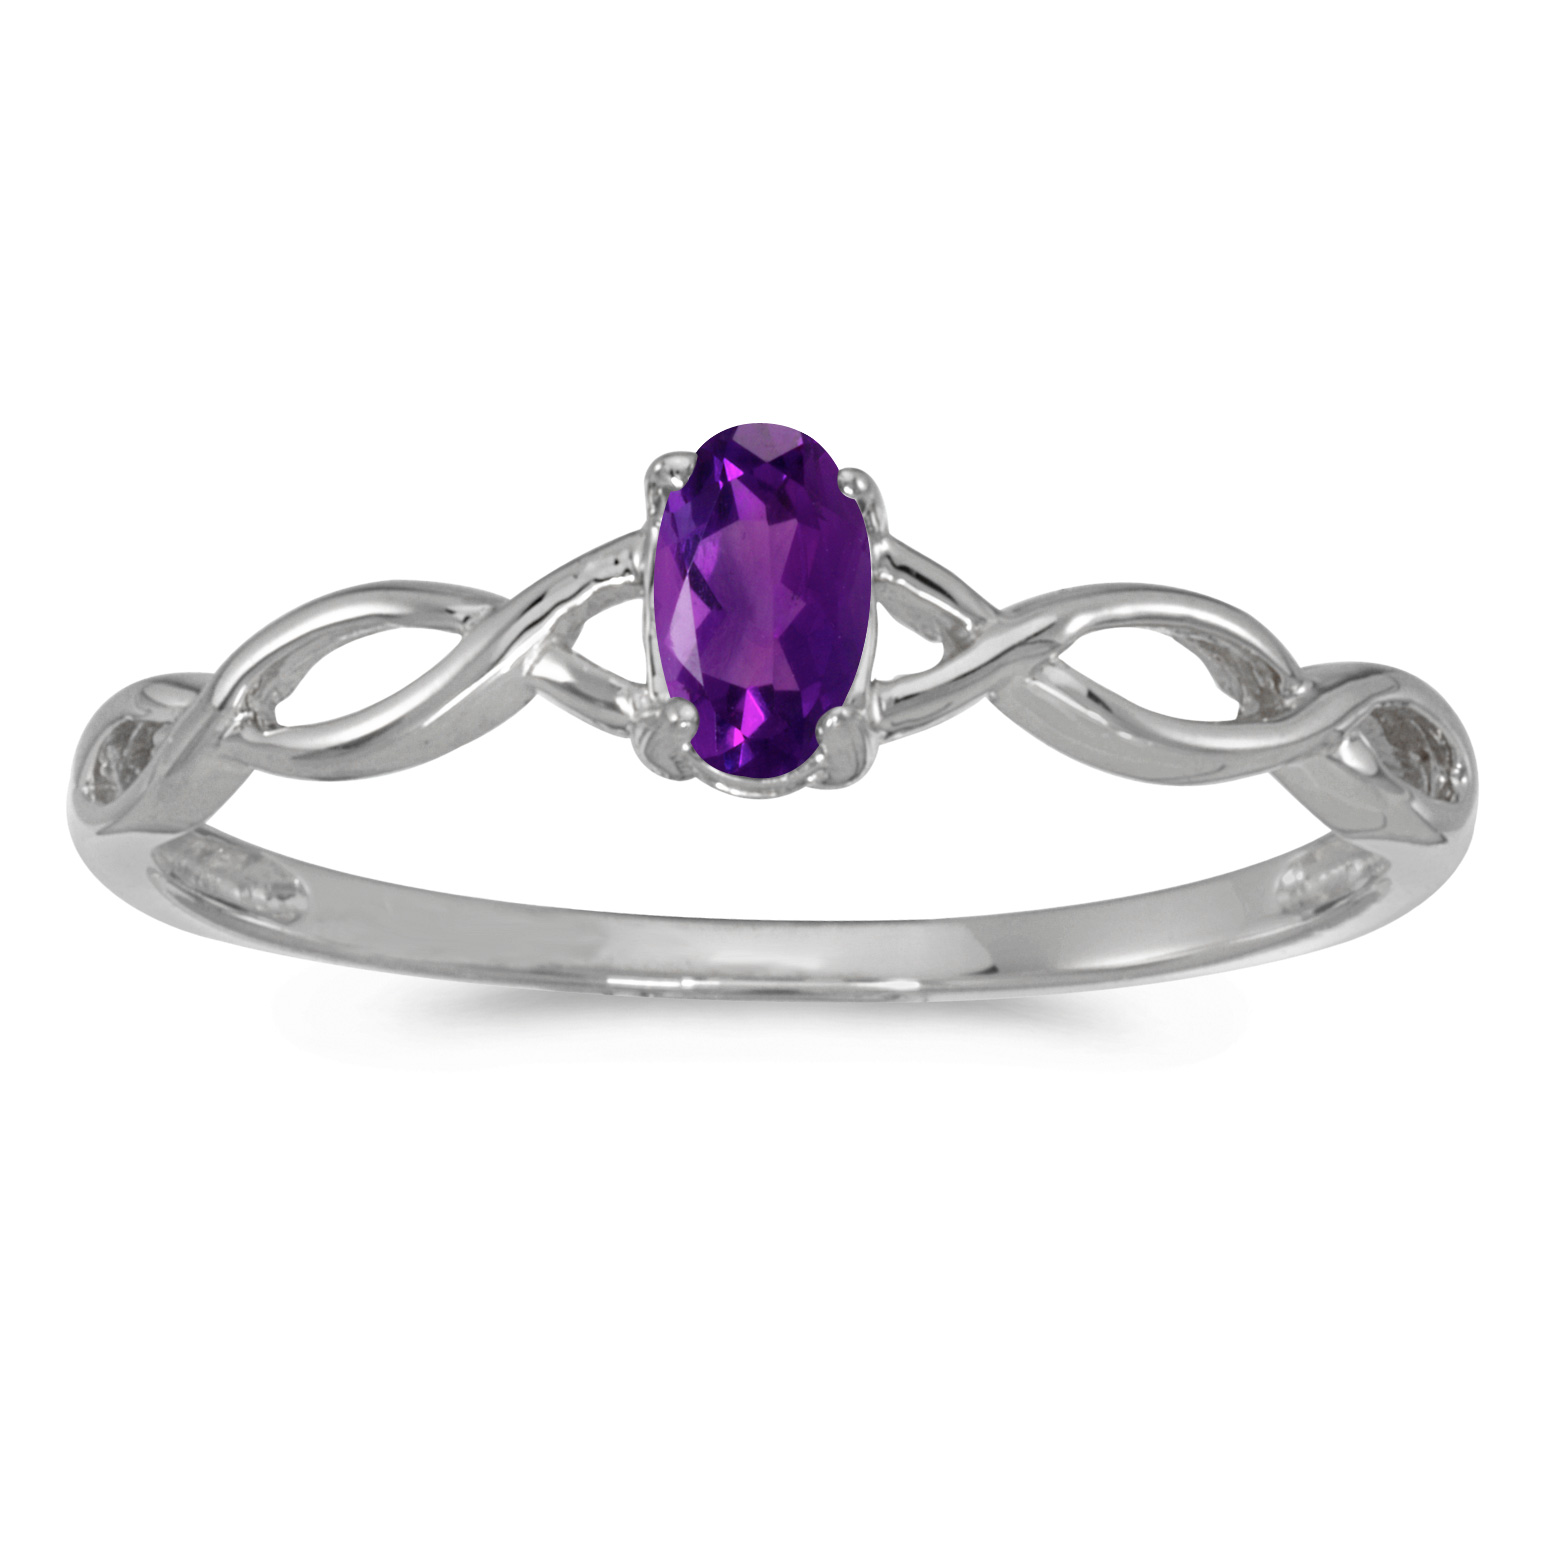 10k White Gold Oval Amethyst Ring by